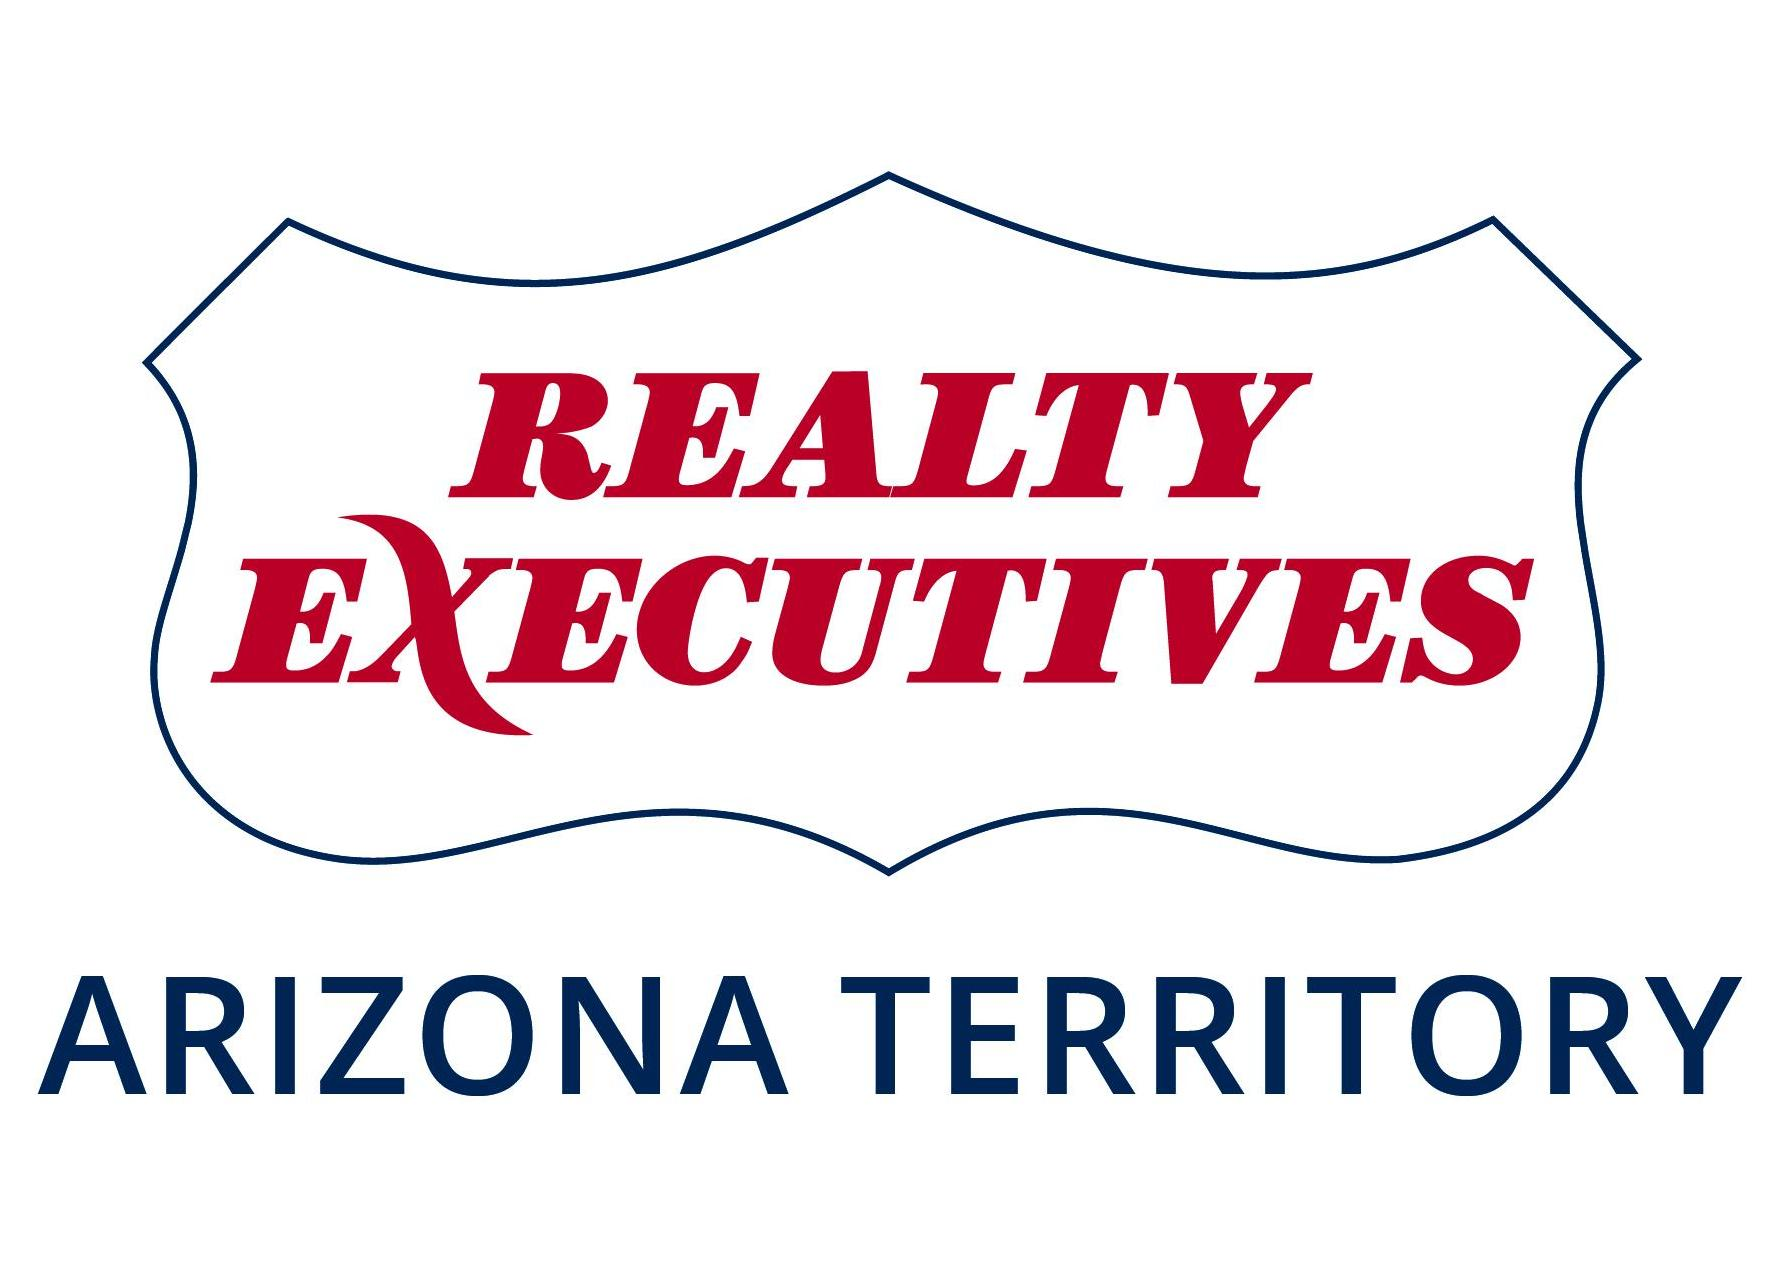 realty-executives-arizona-territory